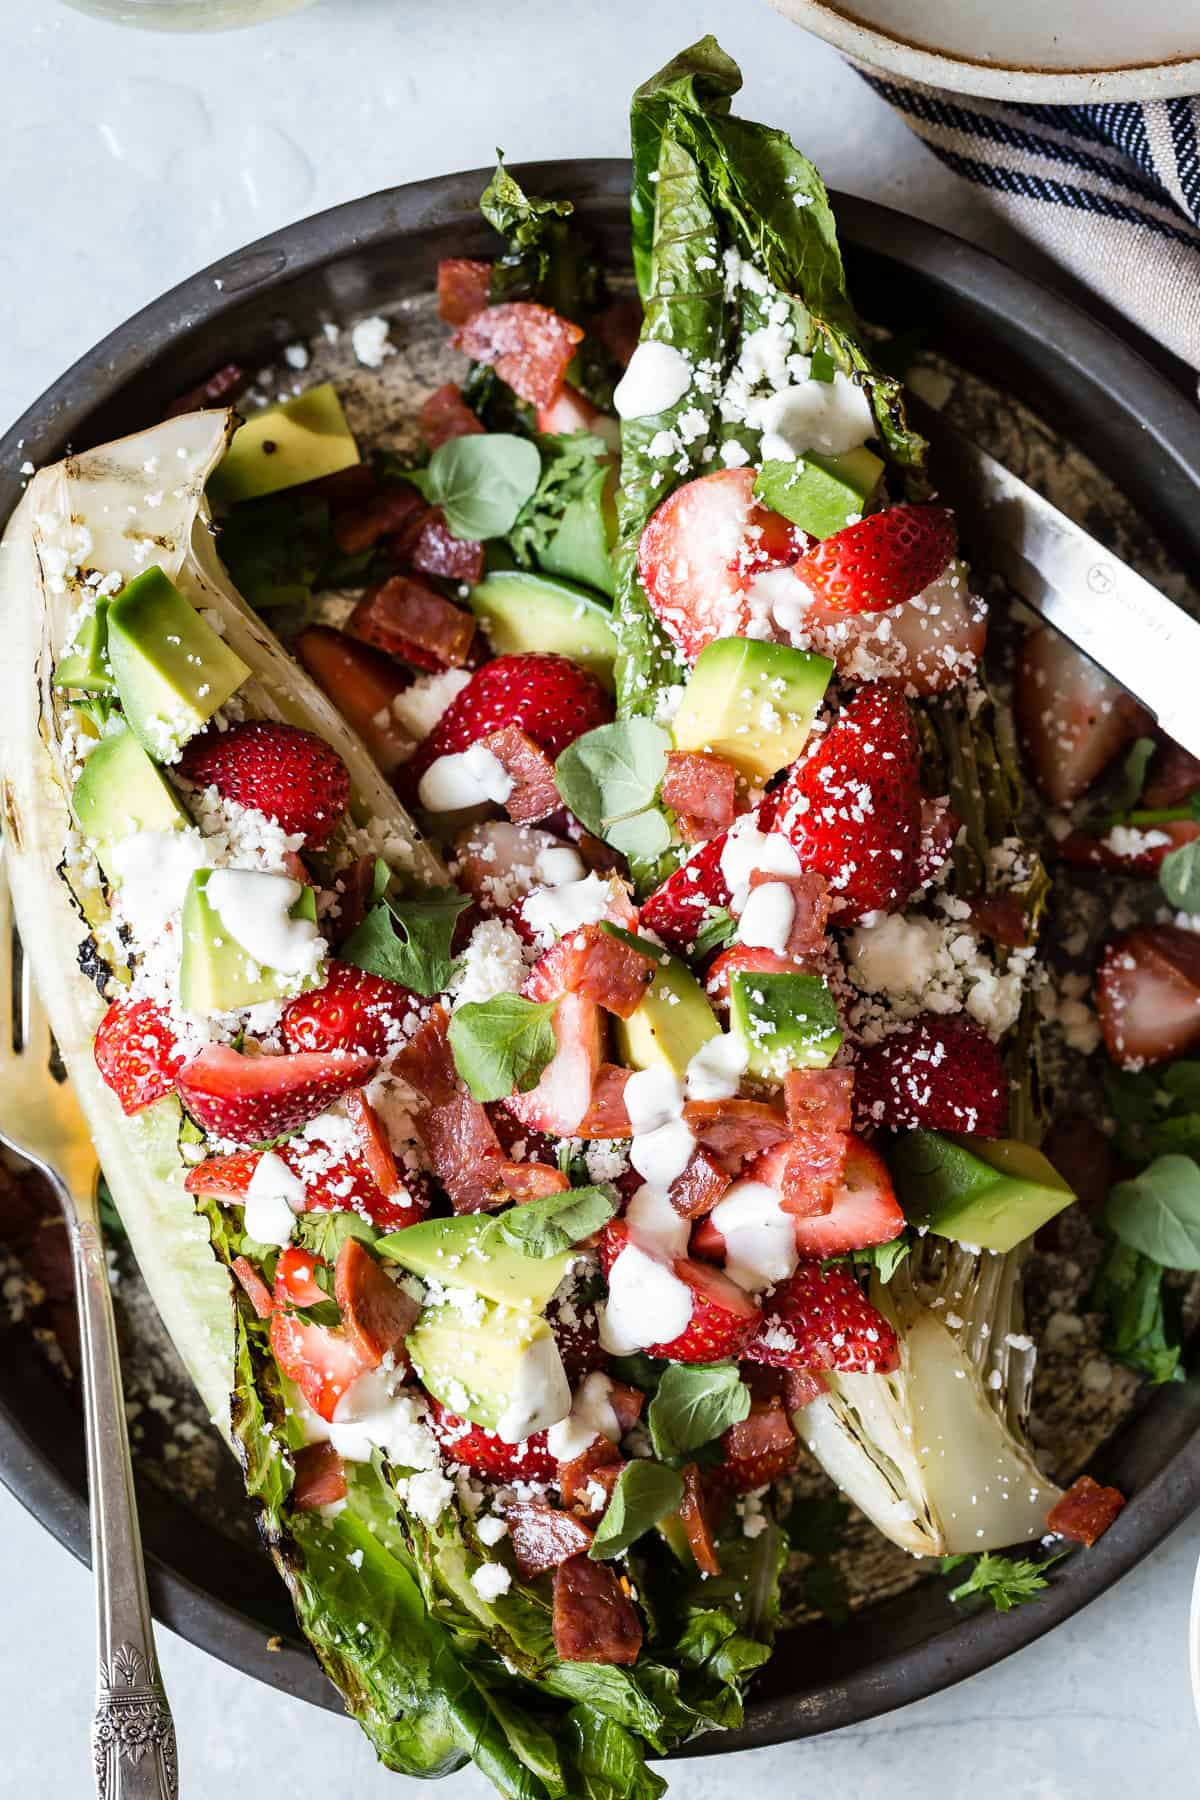 A healthy and light summer lunch strawberry salad loaded with avocado and crispy salami!